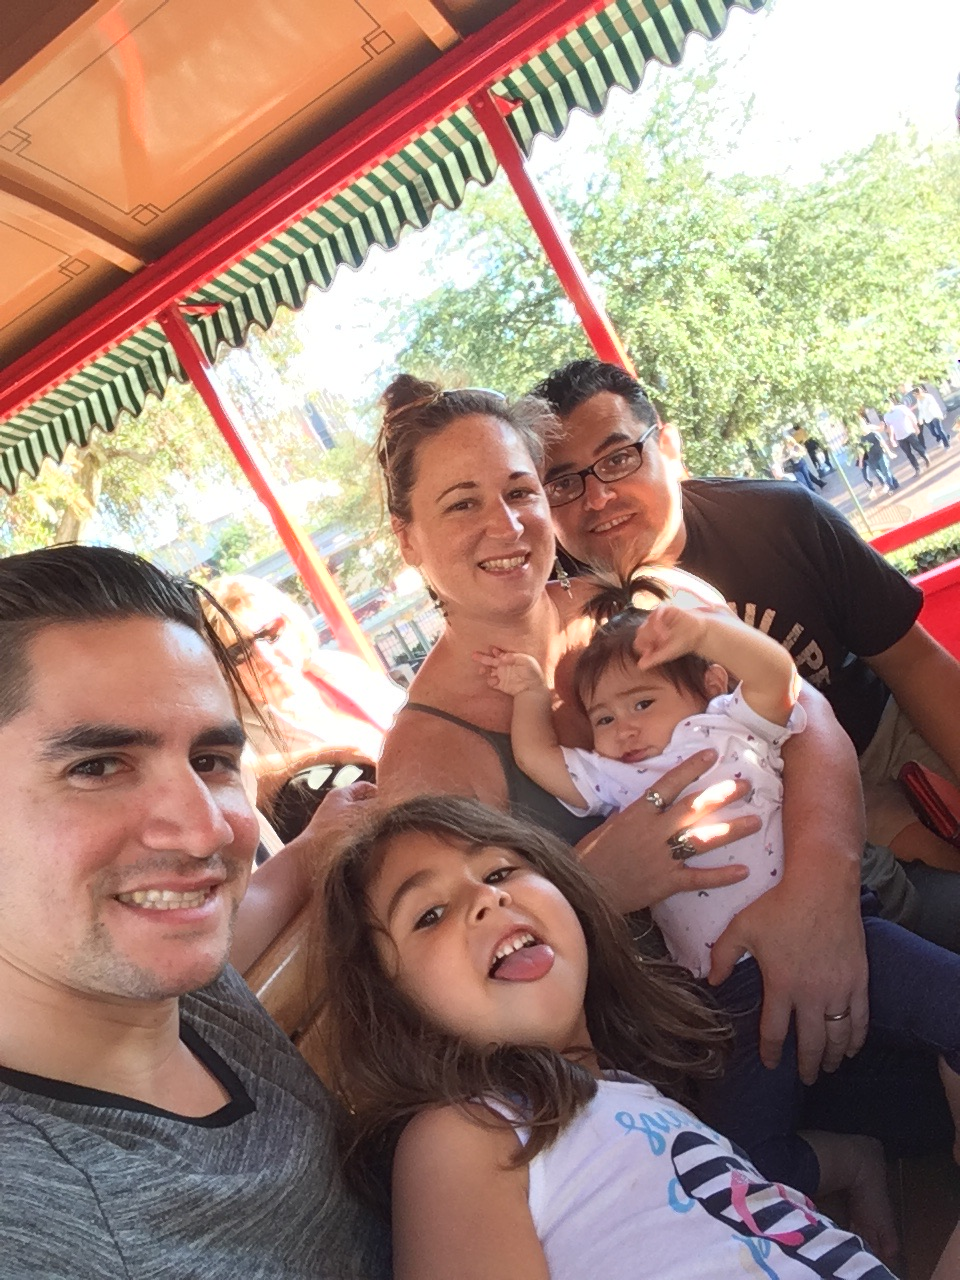 Ambivalent About Disneyland: A Family Trip